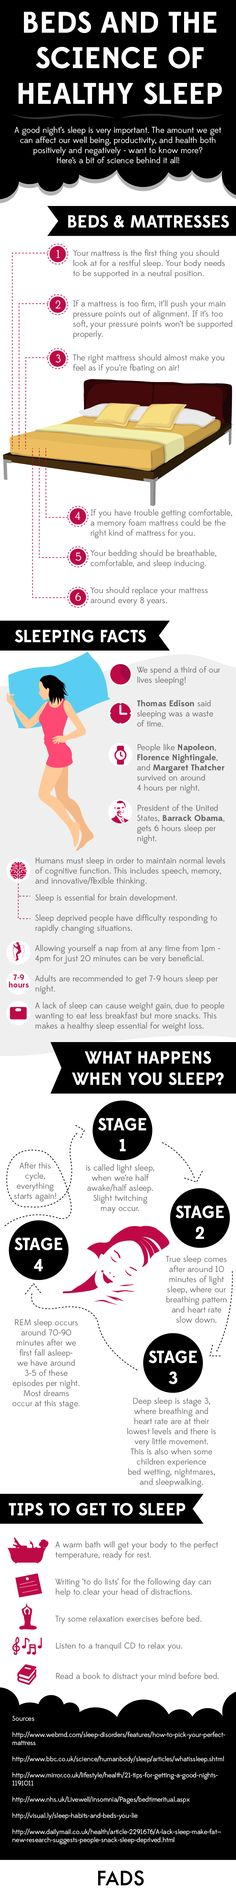 Beds & The Science Of Healthy Sleep